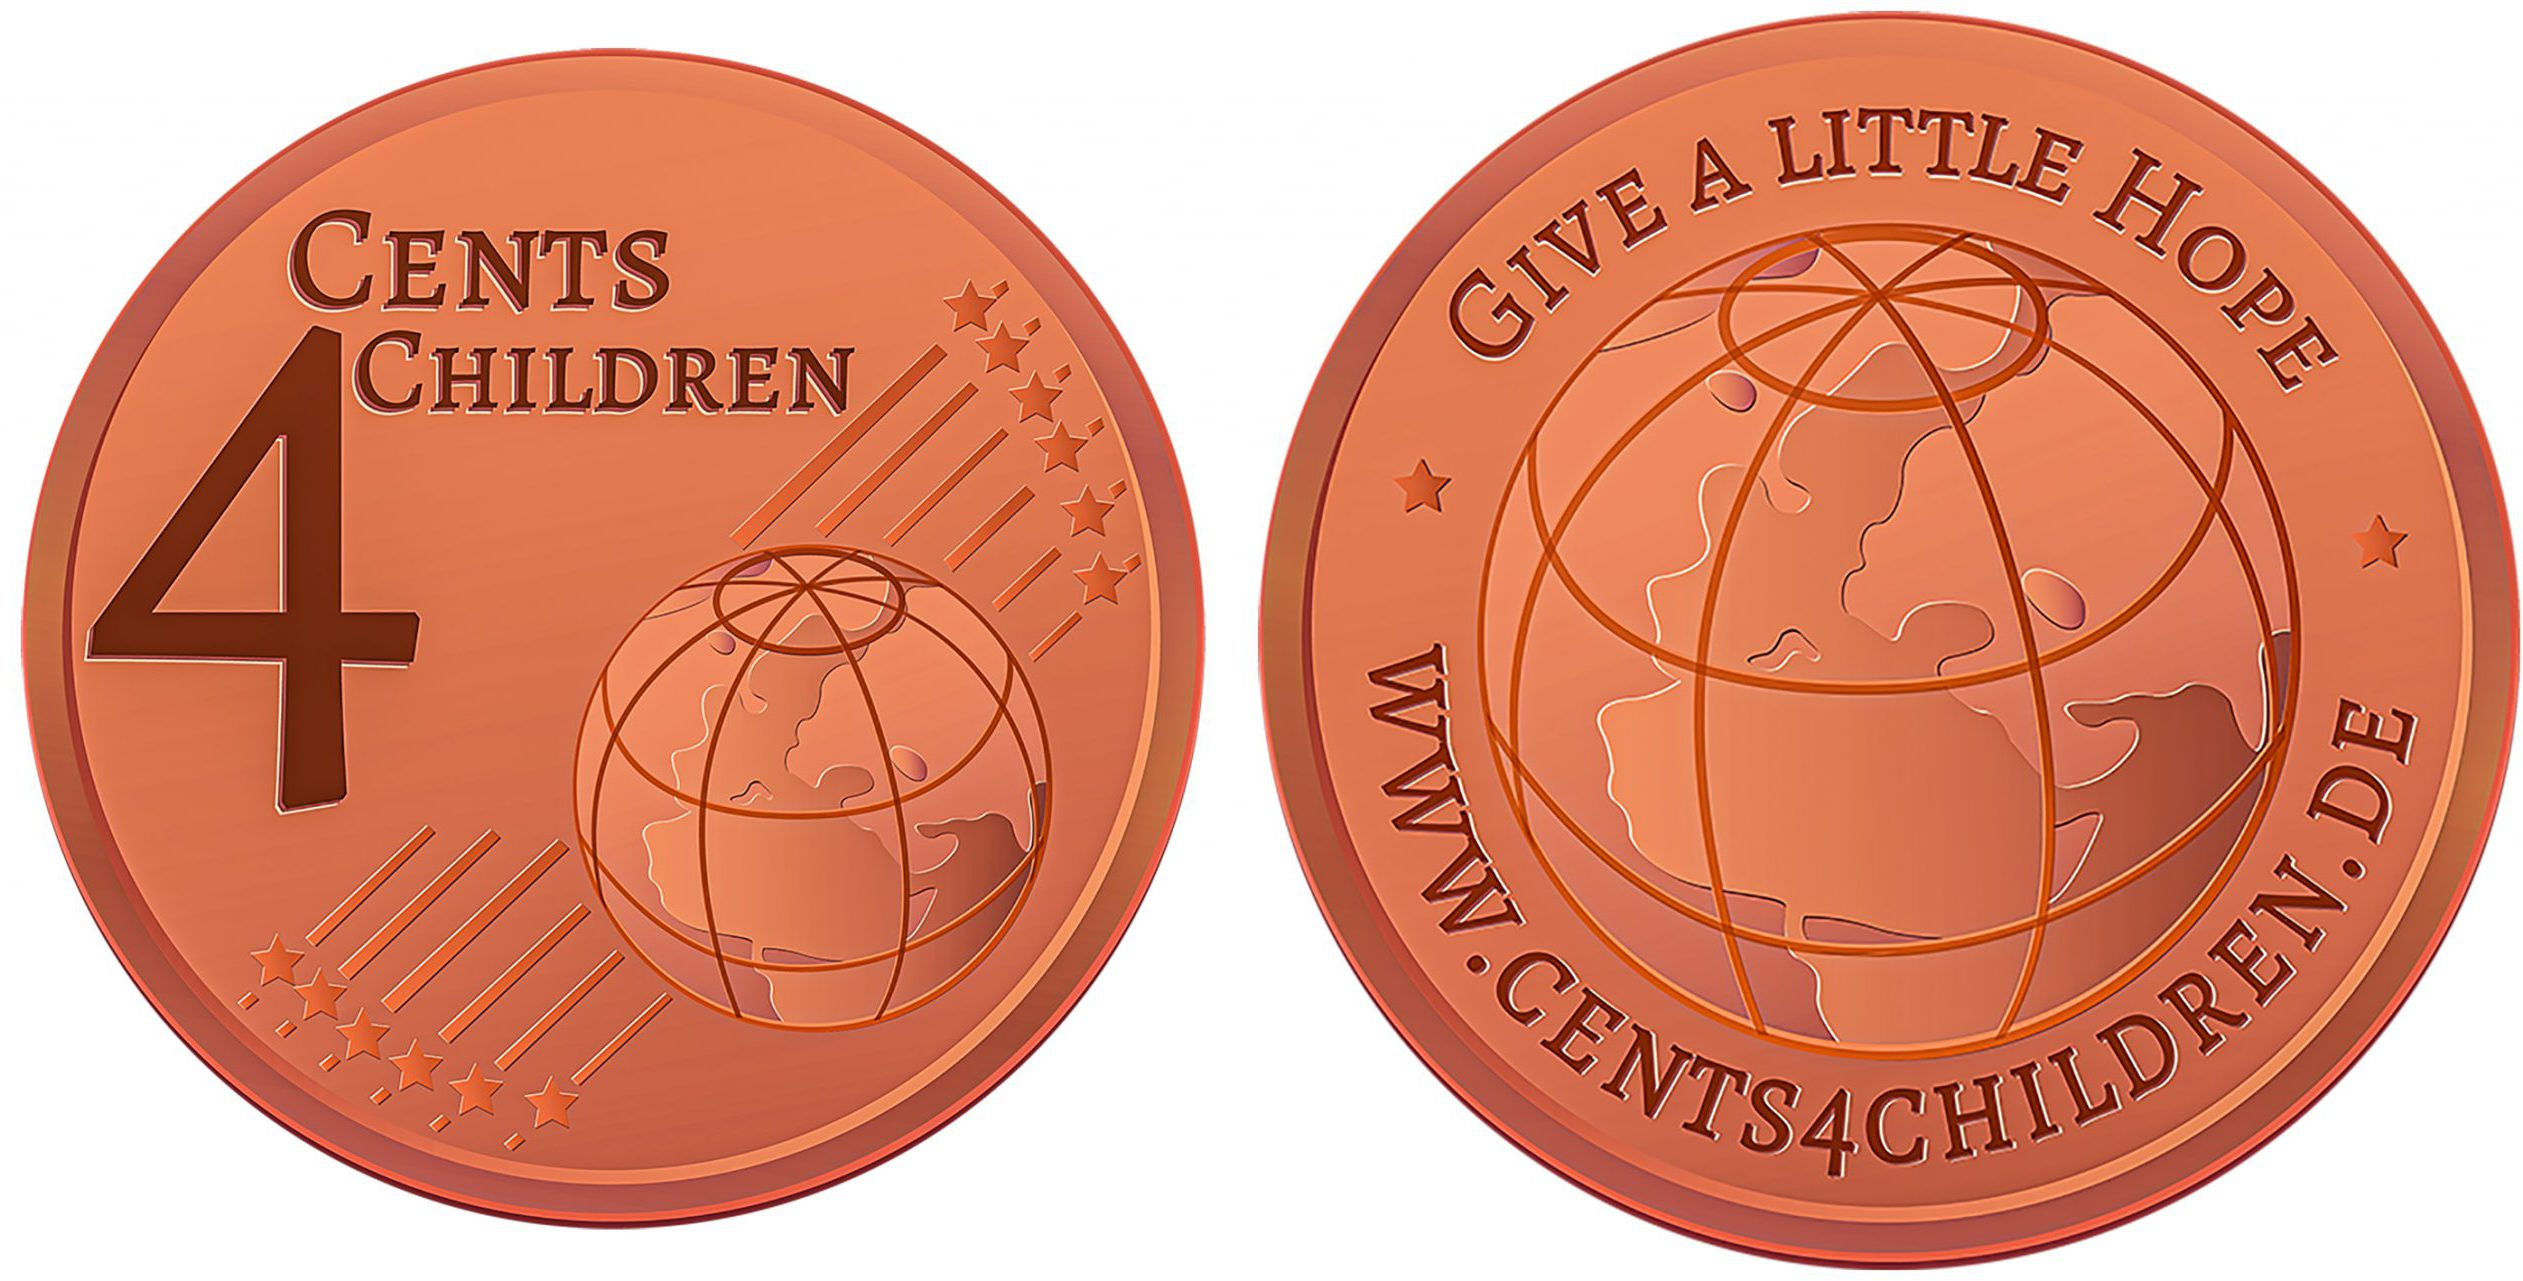 Cents4Children